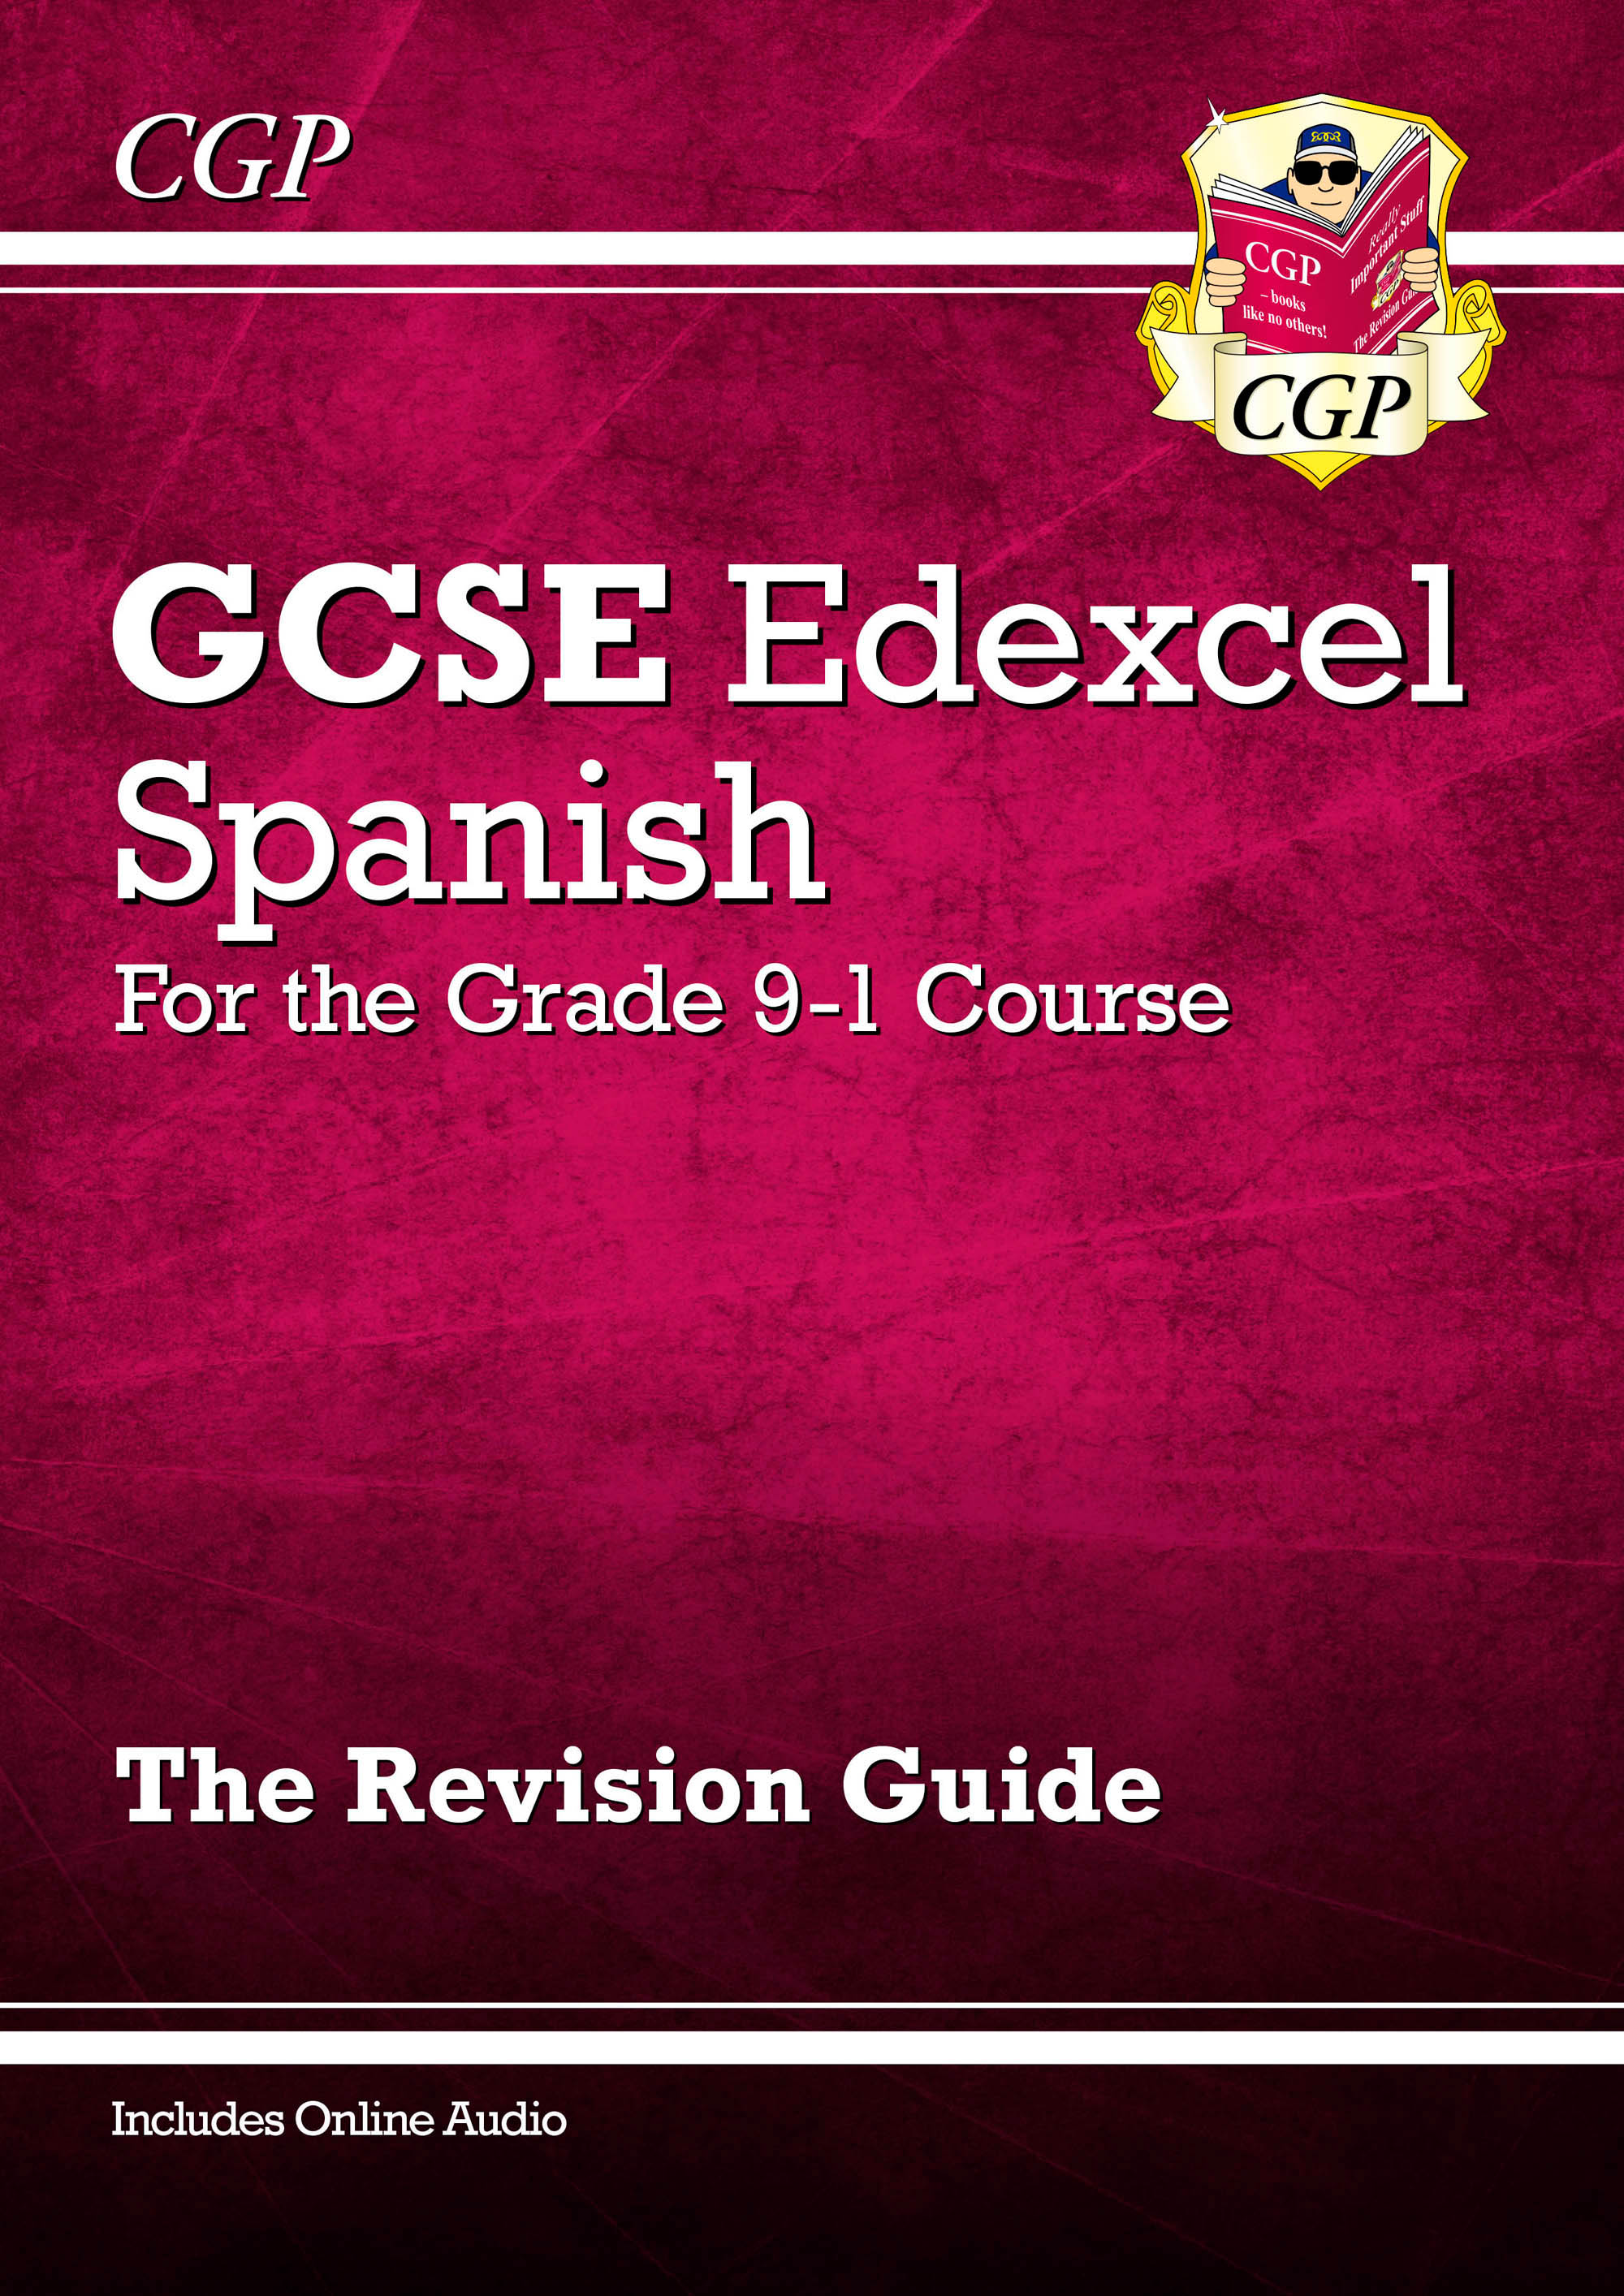 SPER41DK - New GCSE Spanish Edexcel Revision Guide - for the Grade 9-1 Course